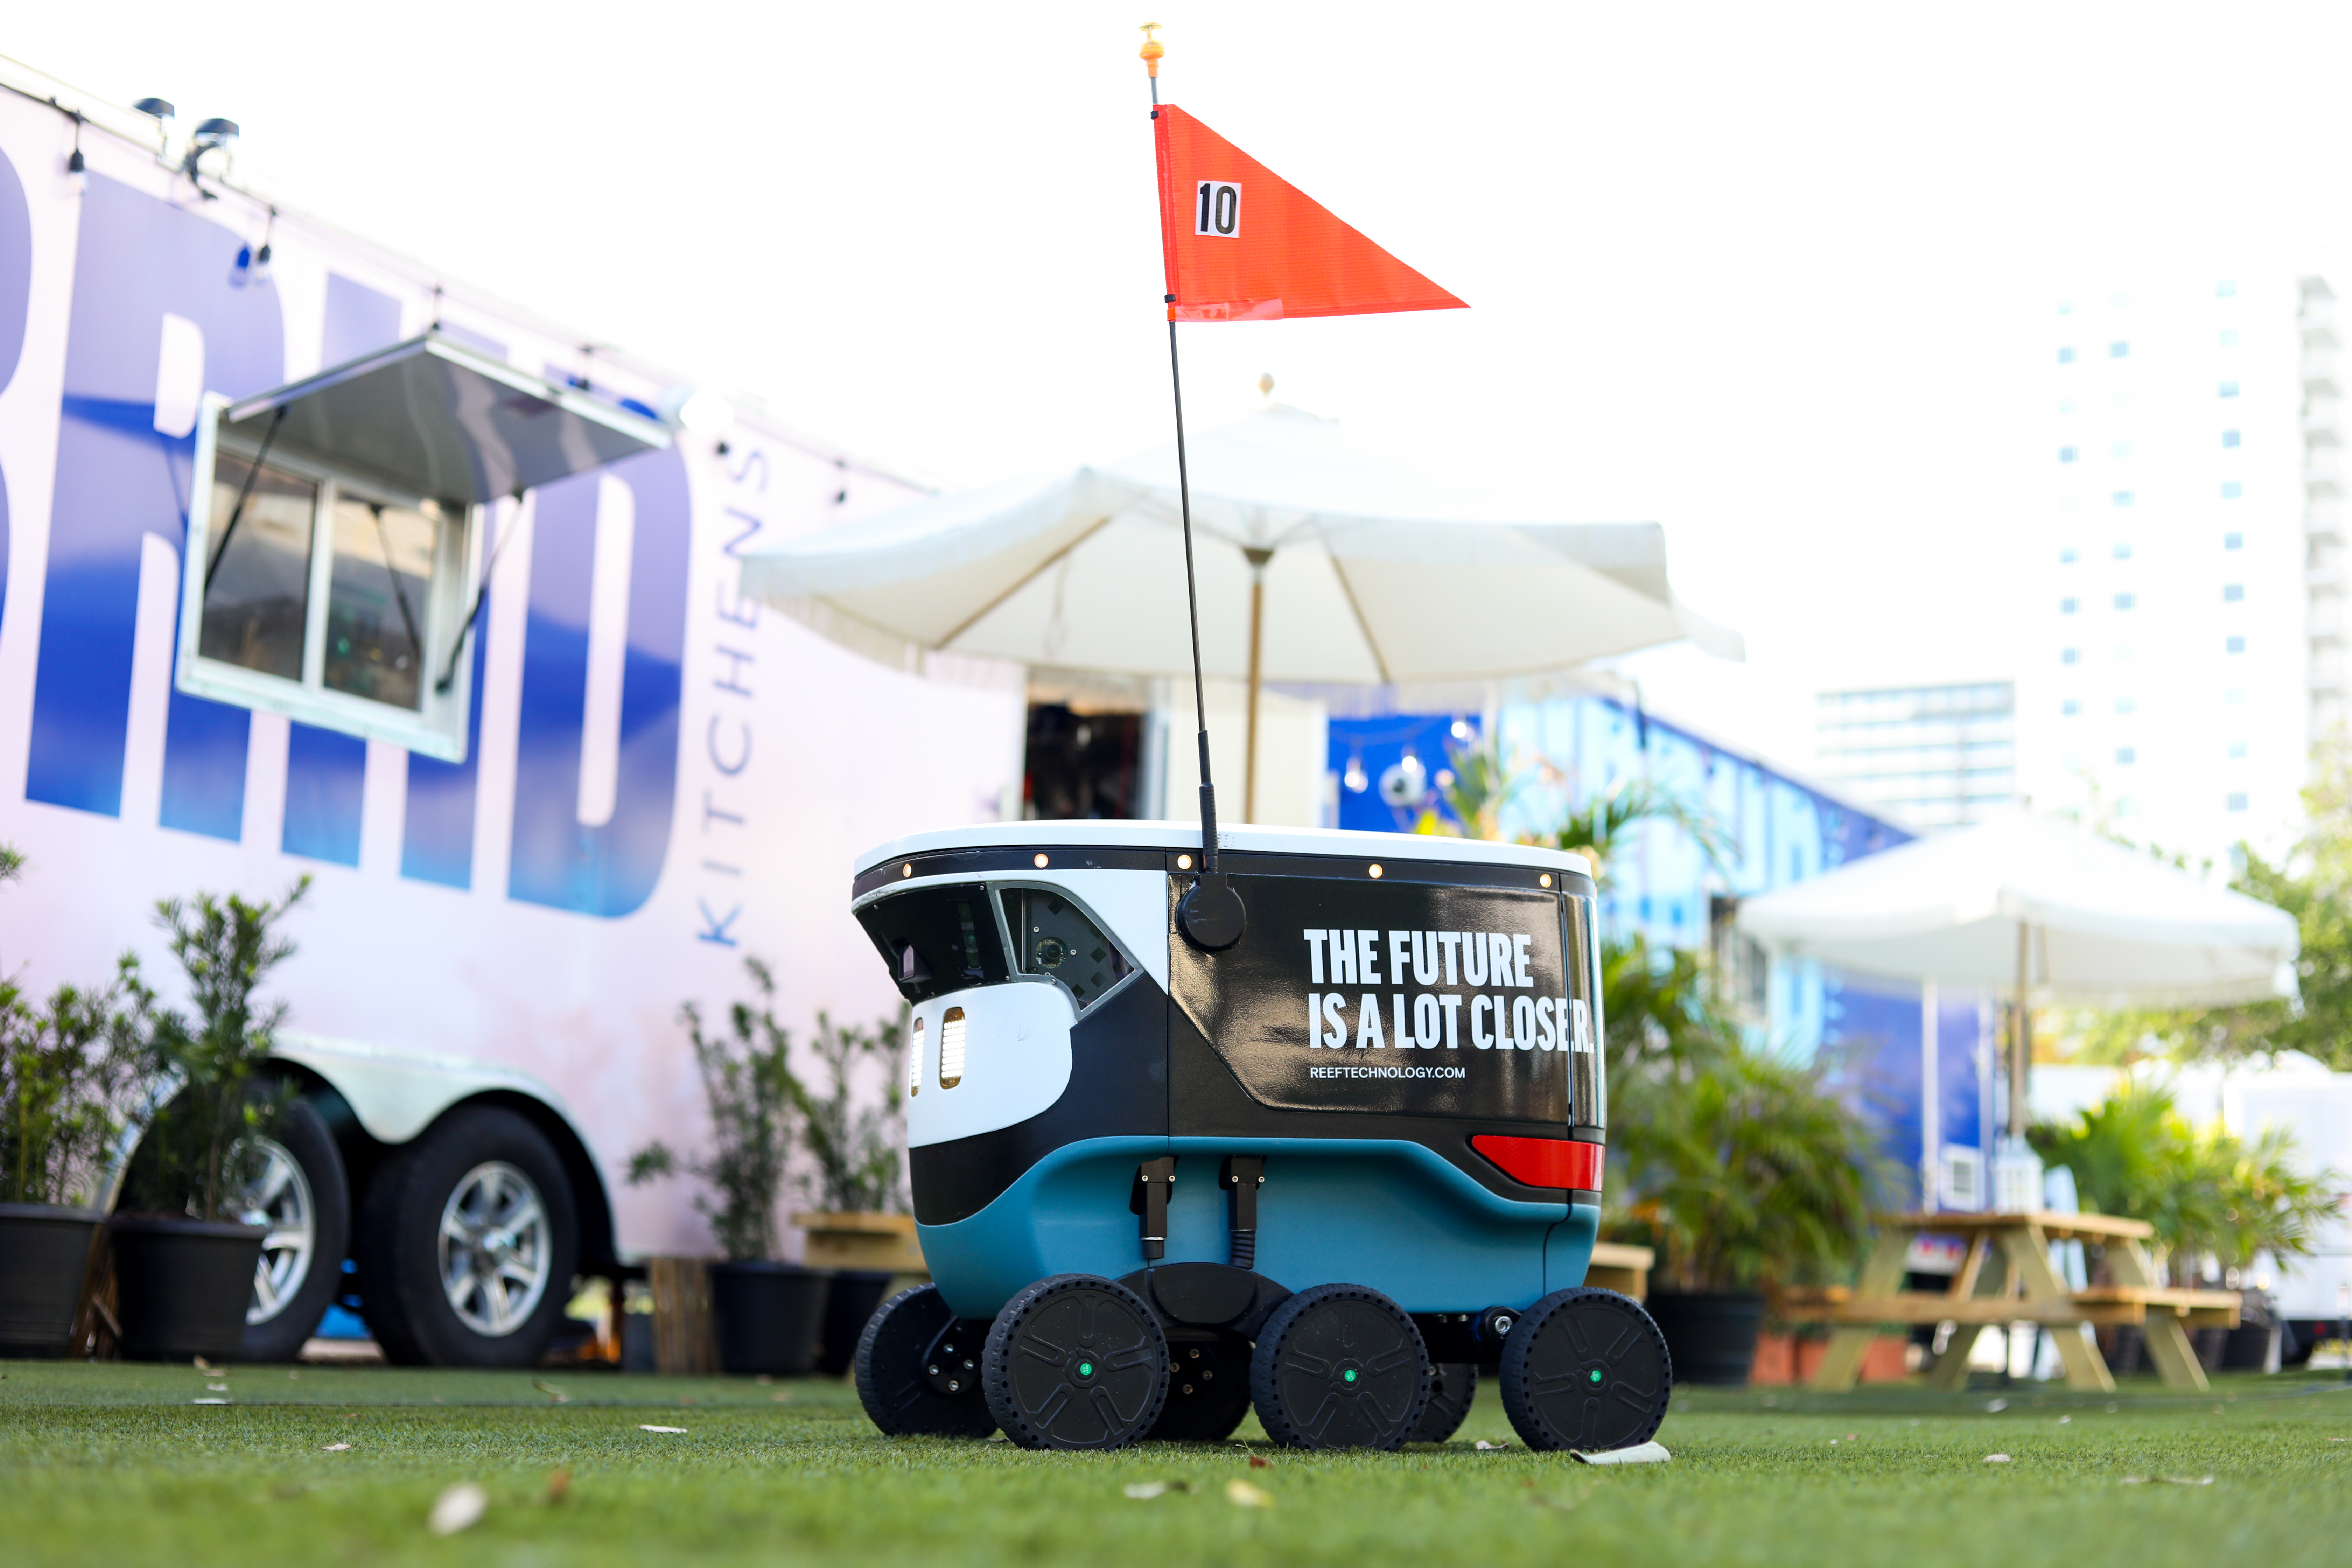 robot on green lawn with trailer in the back on grass